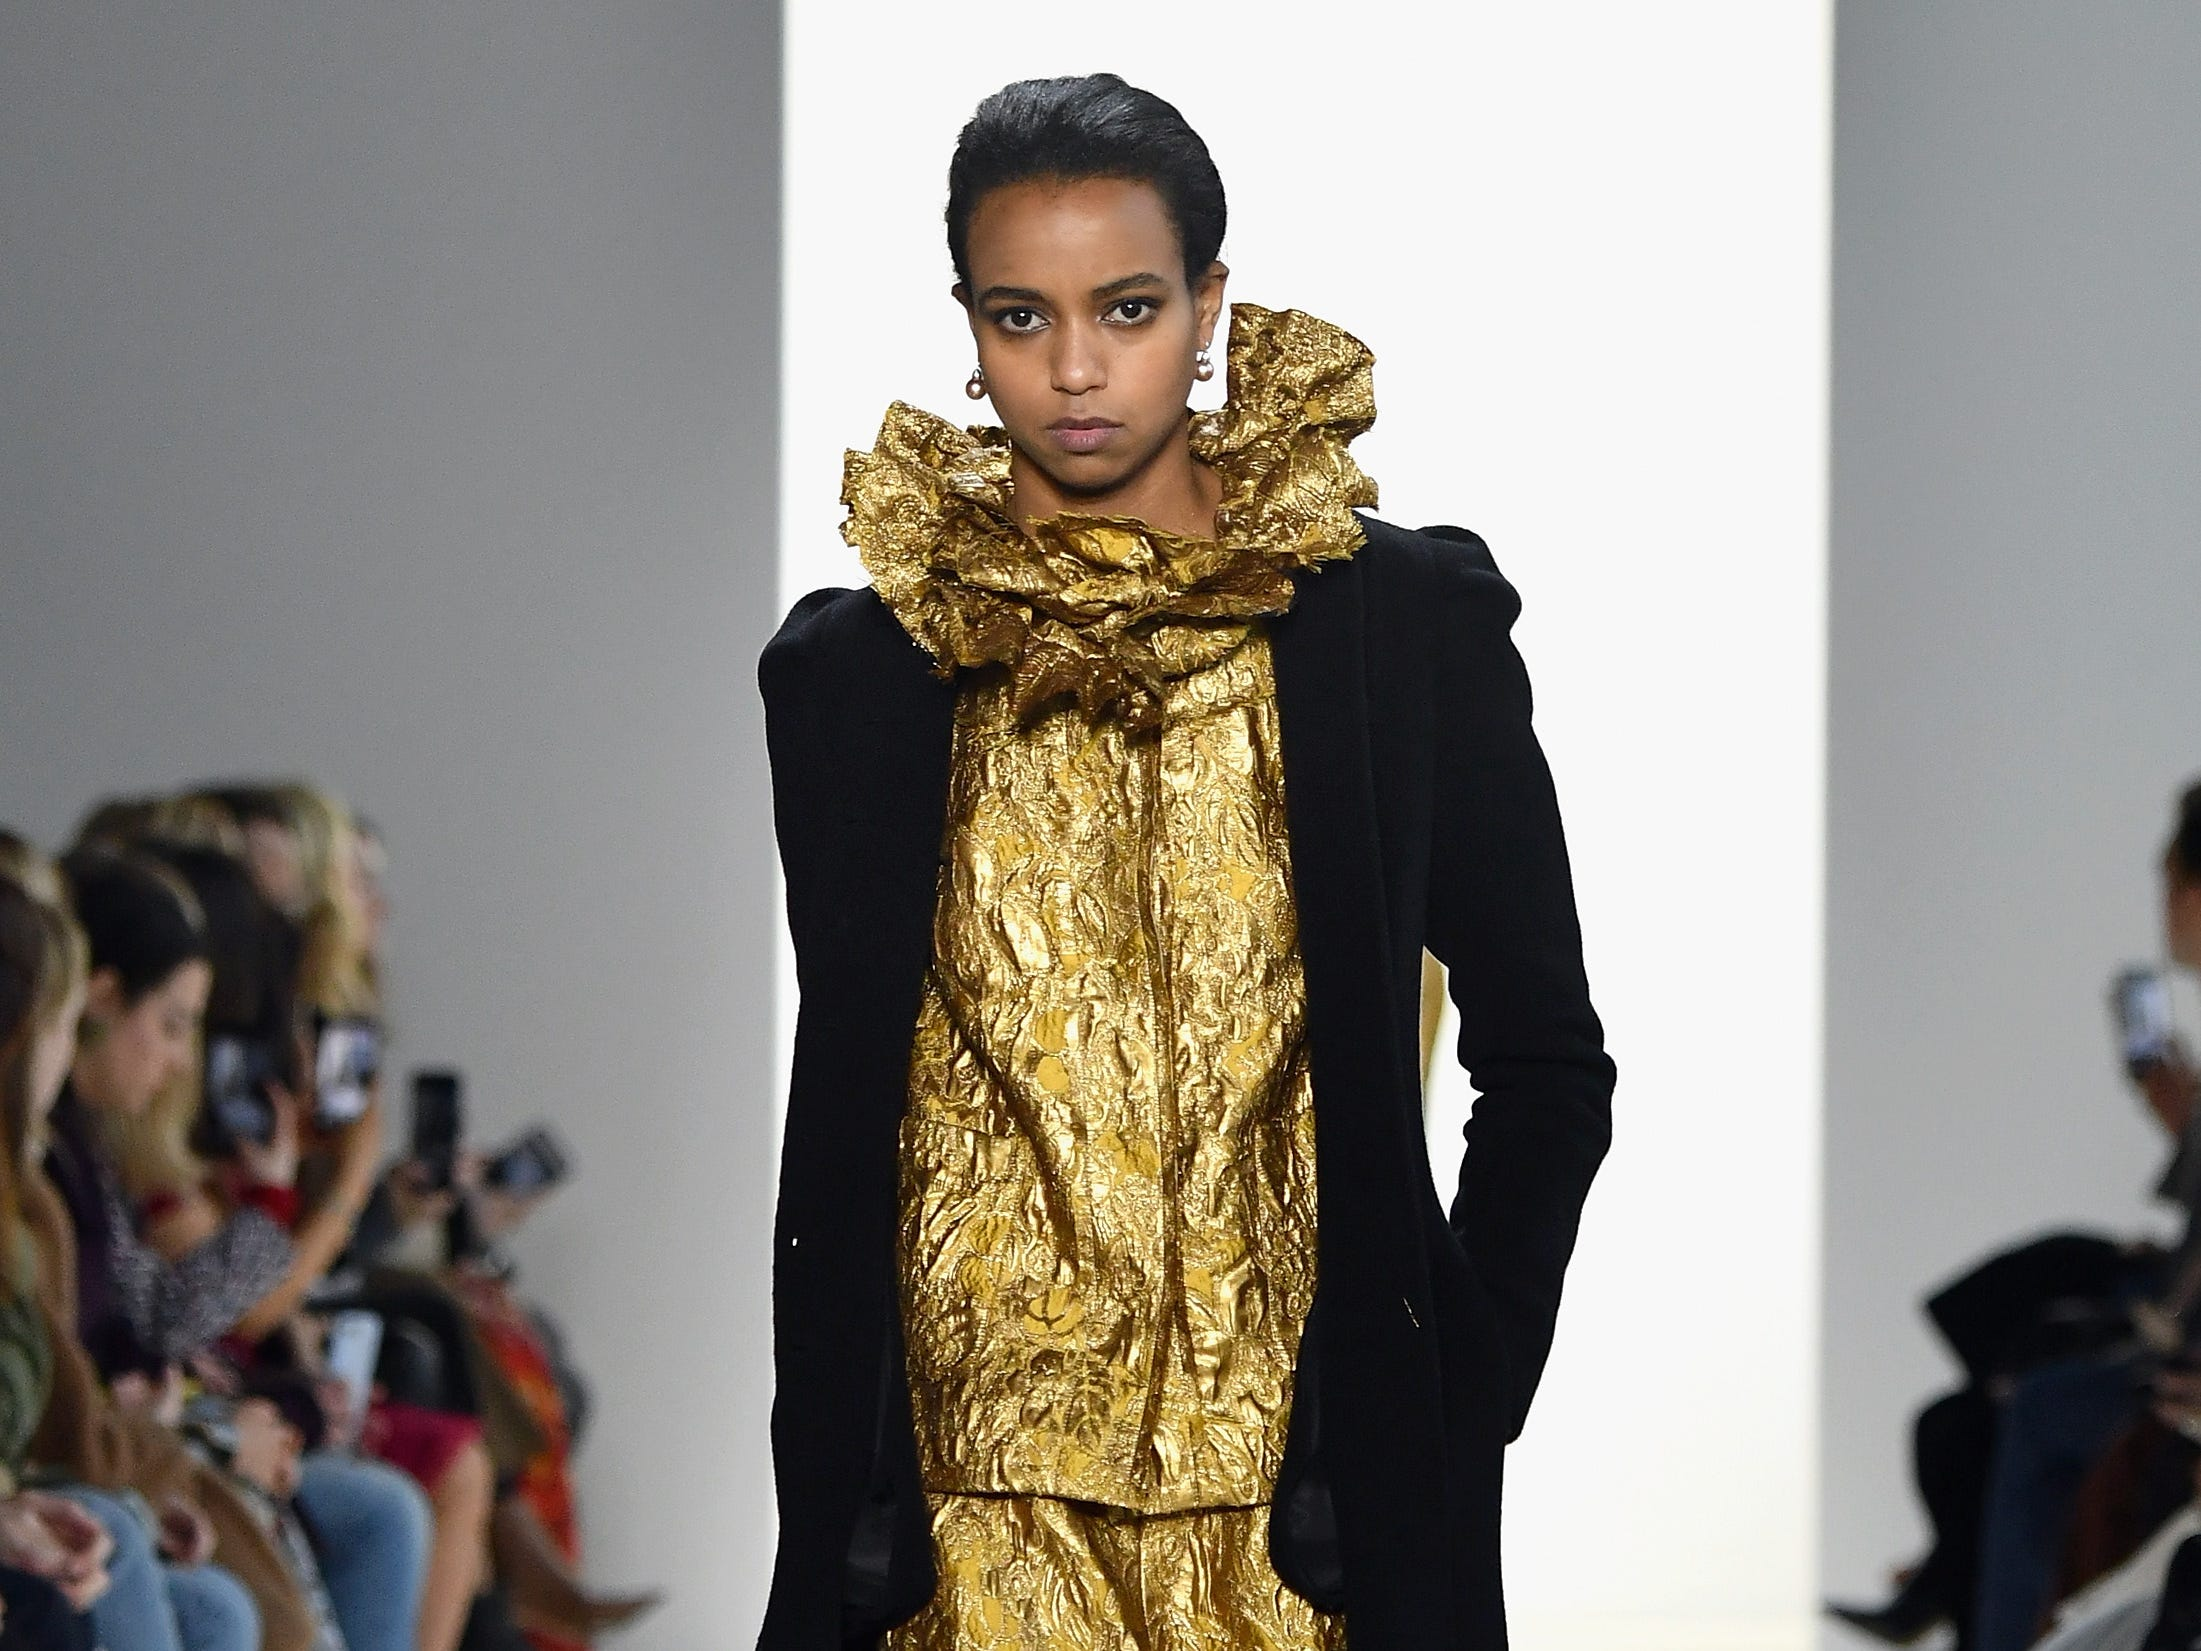 NEW YORK, NY - FEBRUARY 08:  A model walks the runway for the Brock Collection fashion show during New York Fashion Week: The Shows at Gallery I at Spring Studios on February 8, 2019 in New York City.  (Photo by Mike Coppola/Getty Images for NYFW: The Shows) ORG XMIT: 775289359 ORIG FILE ID: 1095510512